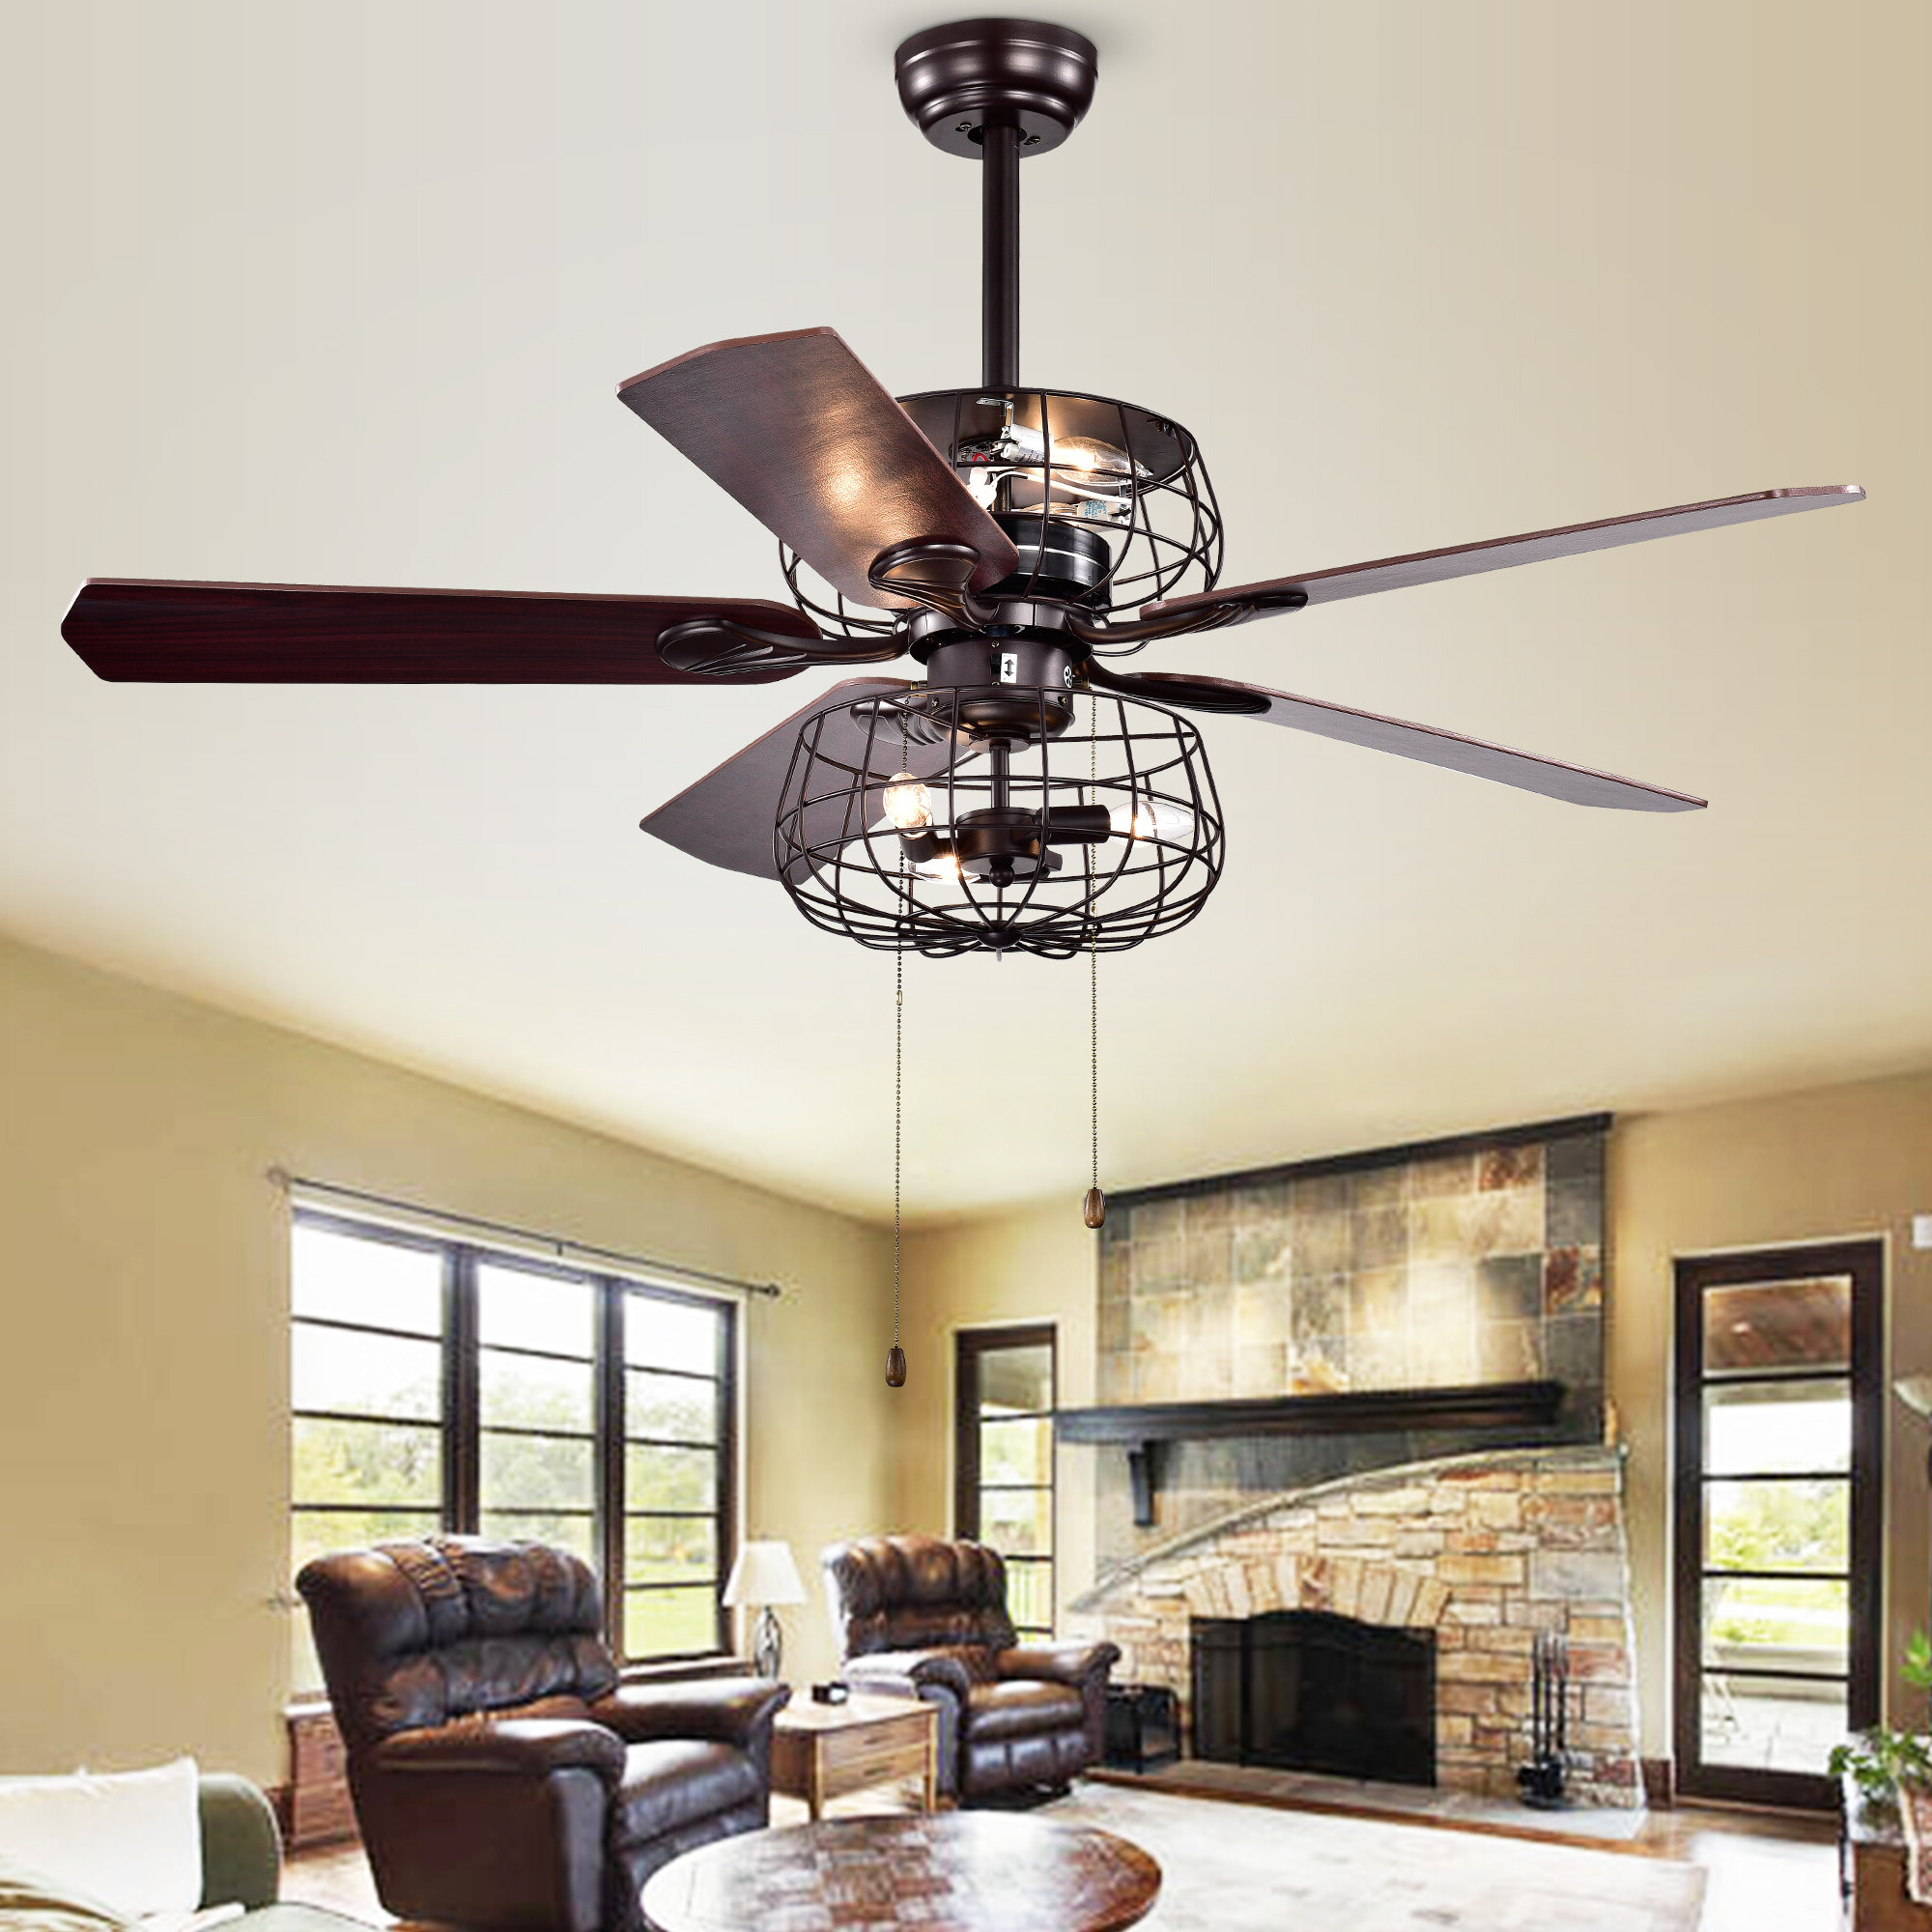 Lindsay 5 Blade Ceiling Fans Regarding Most Recent Kaiya 5 Blade Ceiling Fan, Light Kit Included (View 5 of 20)